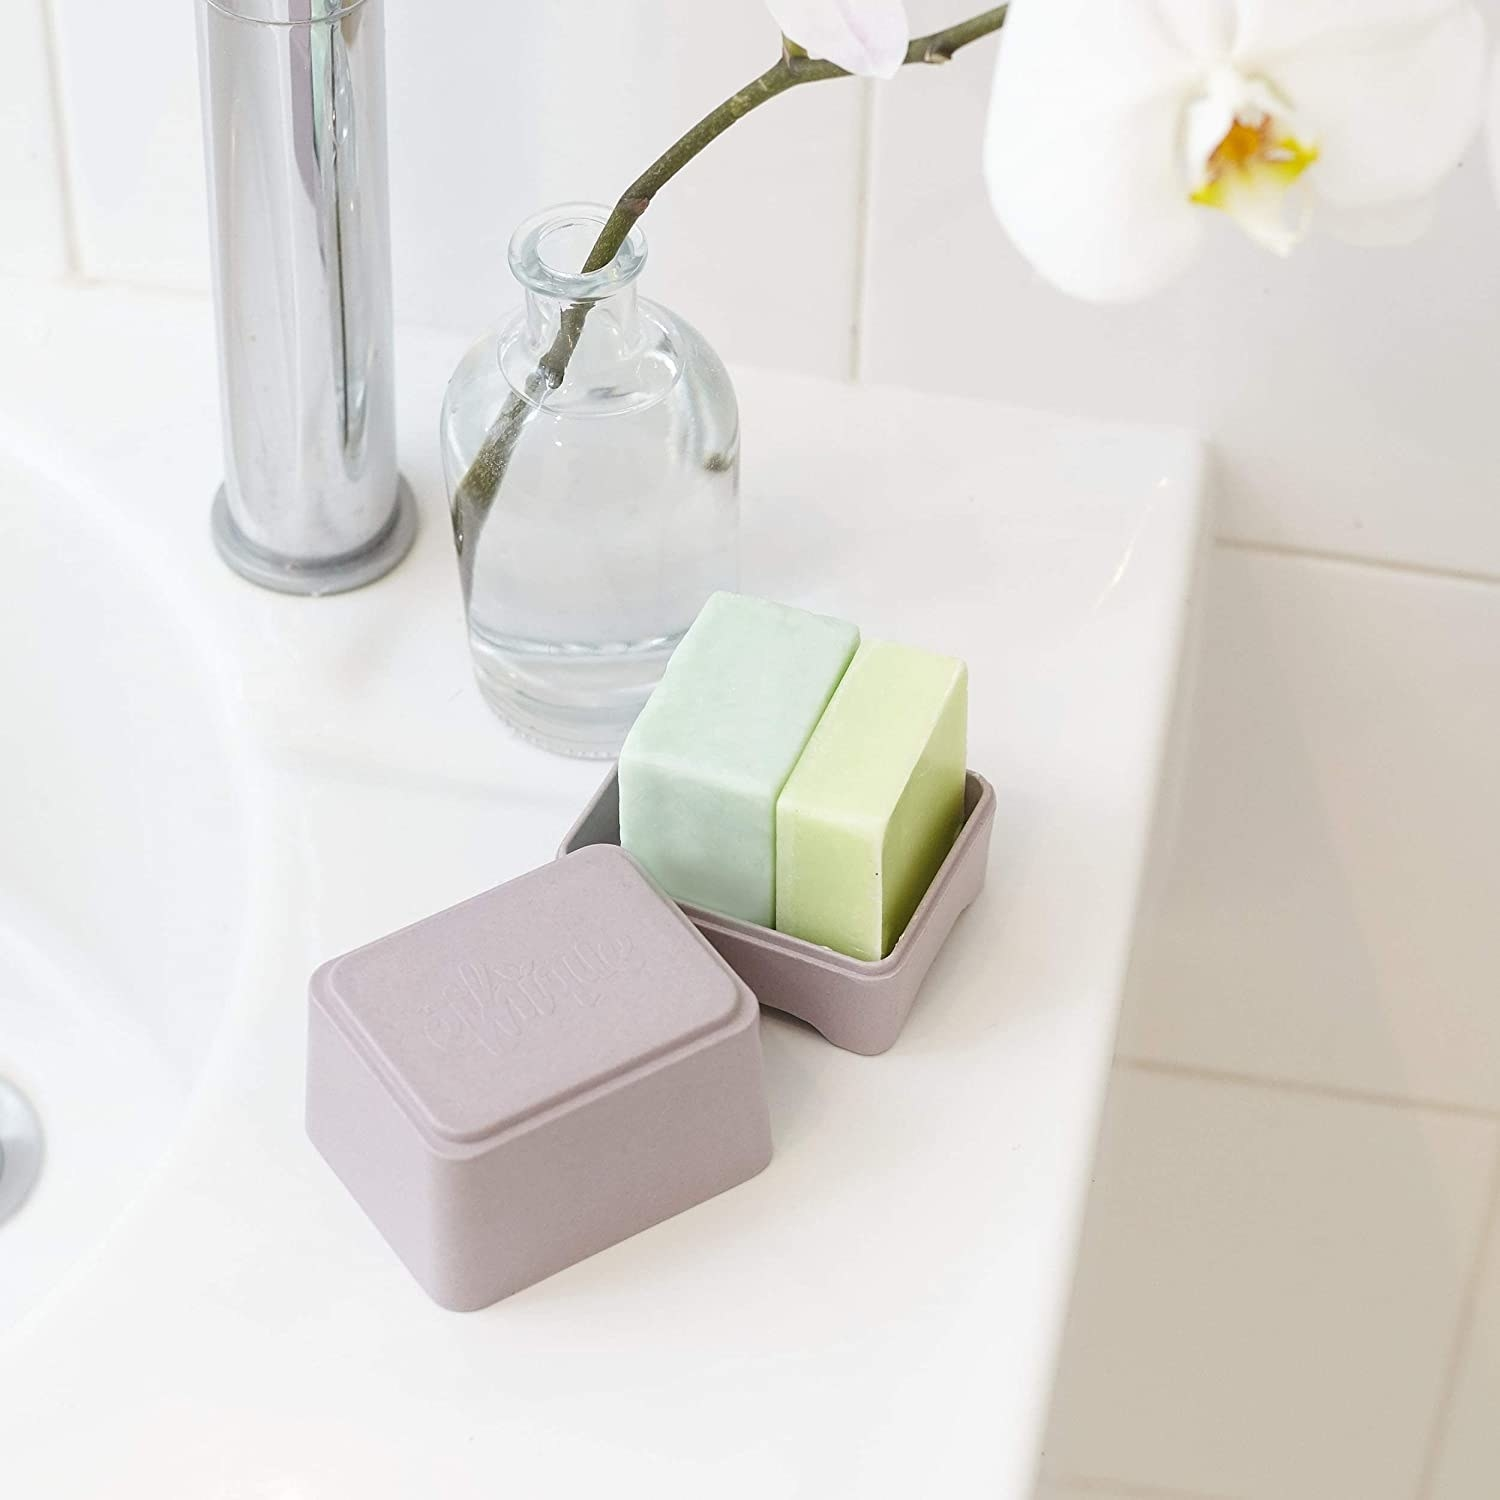 A box containing two soap bars perched on the edge of a tub